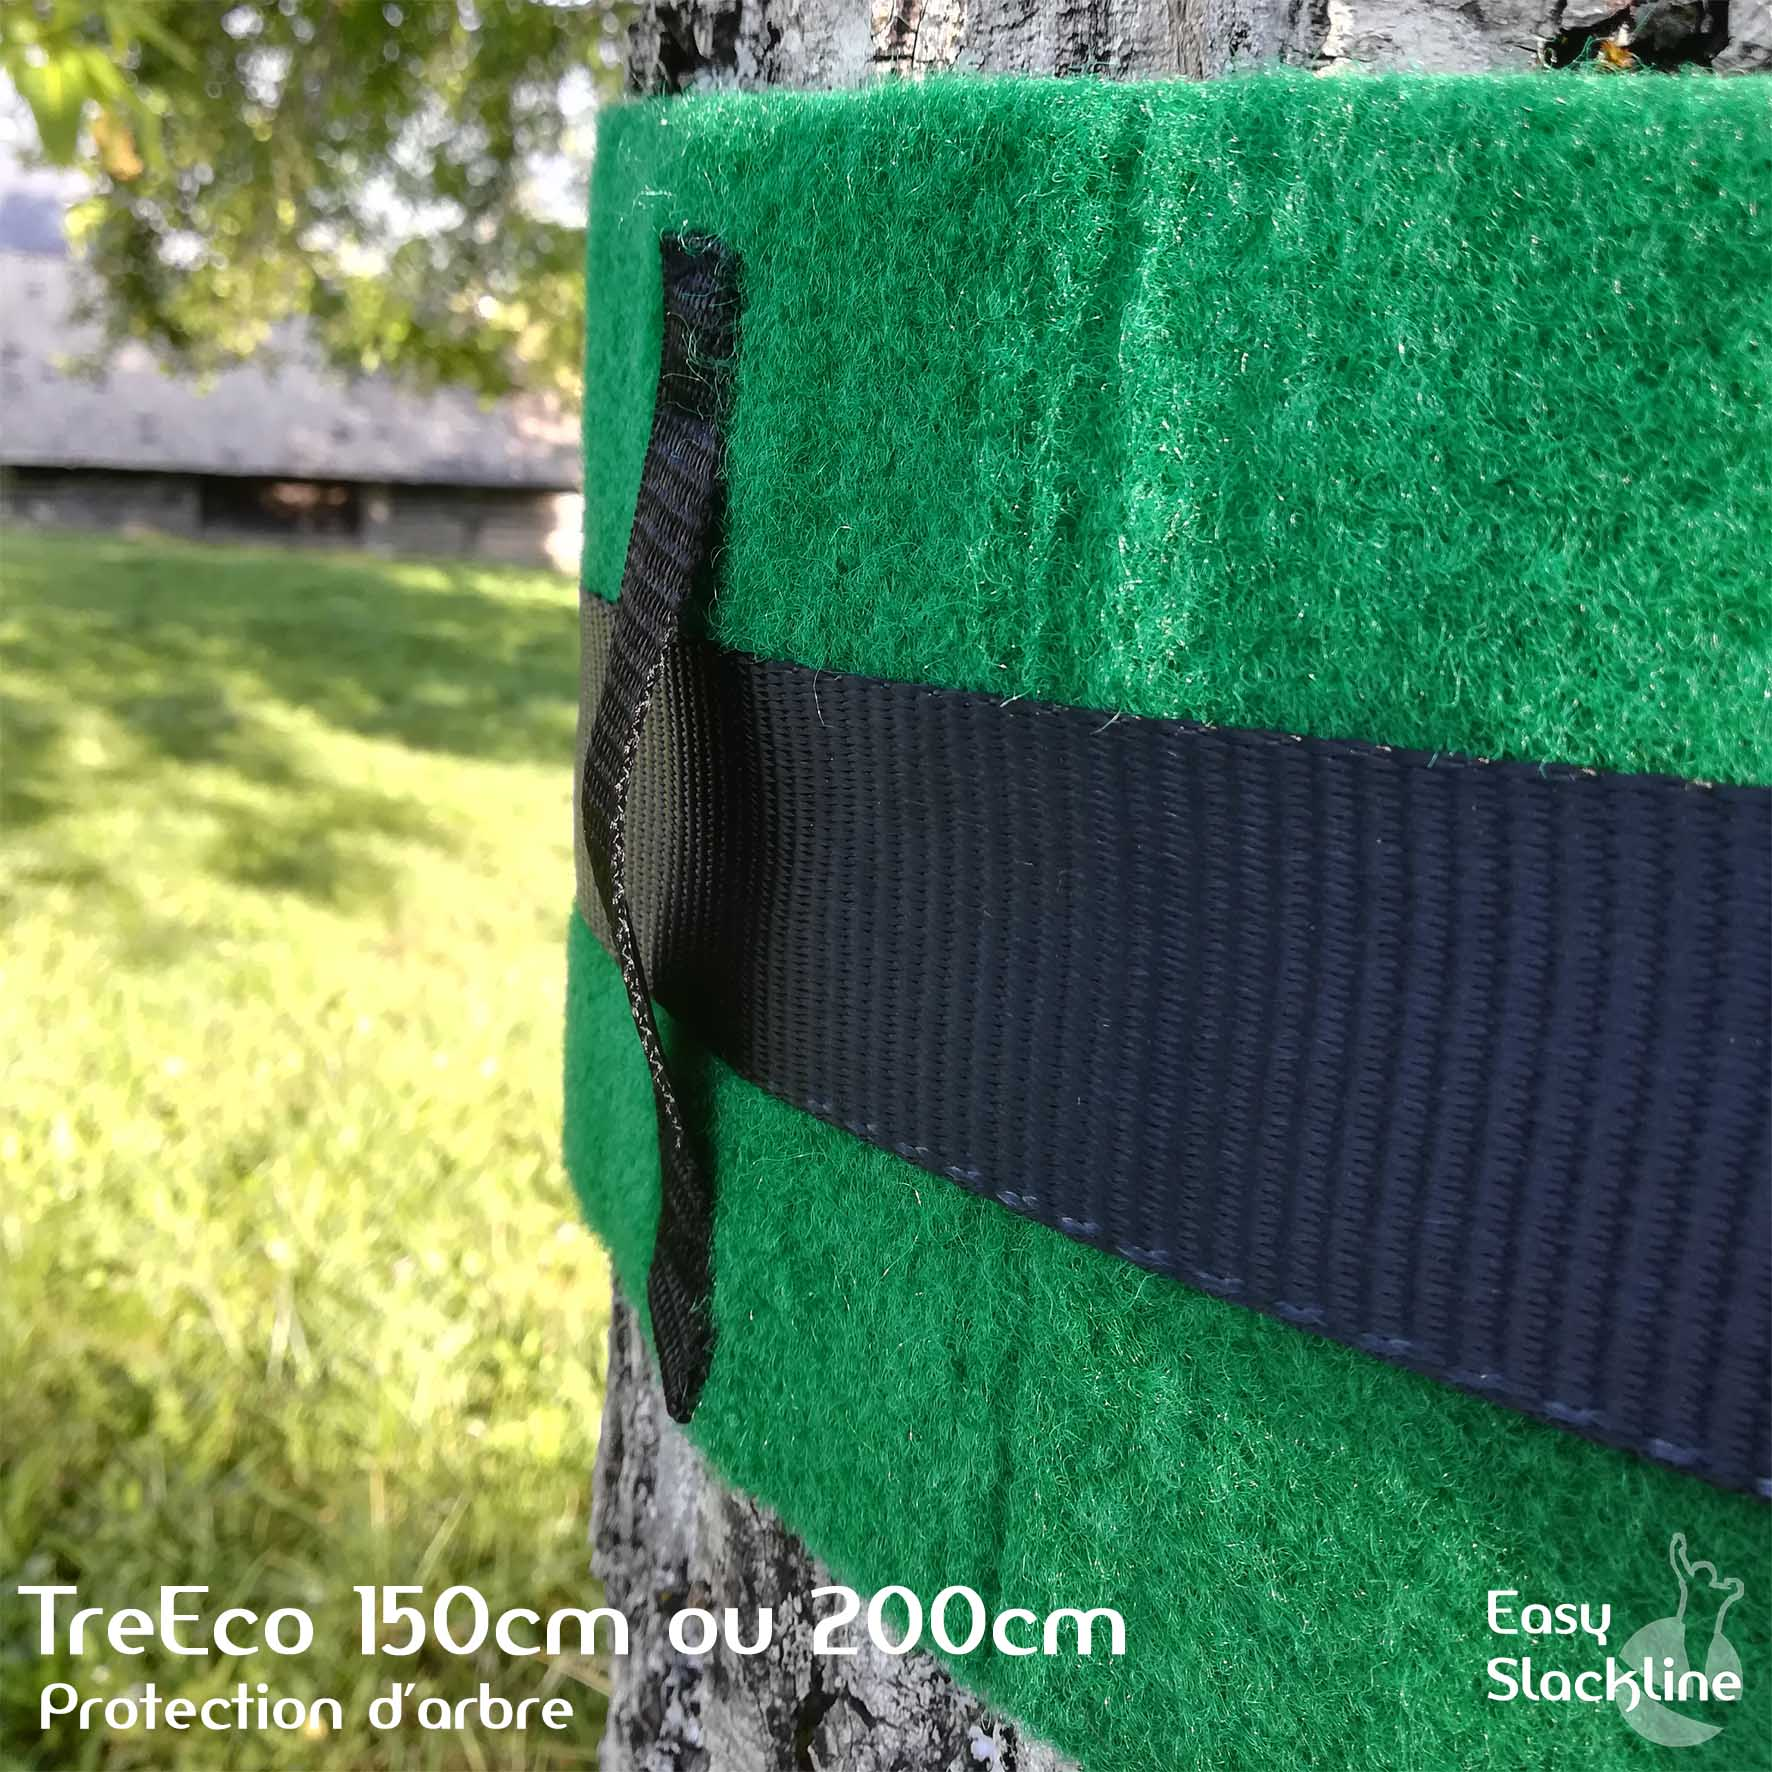 Protection d'arbre TreeEco Easy Slackline